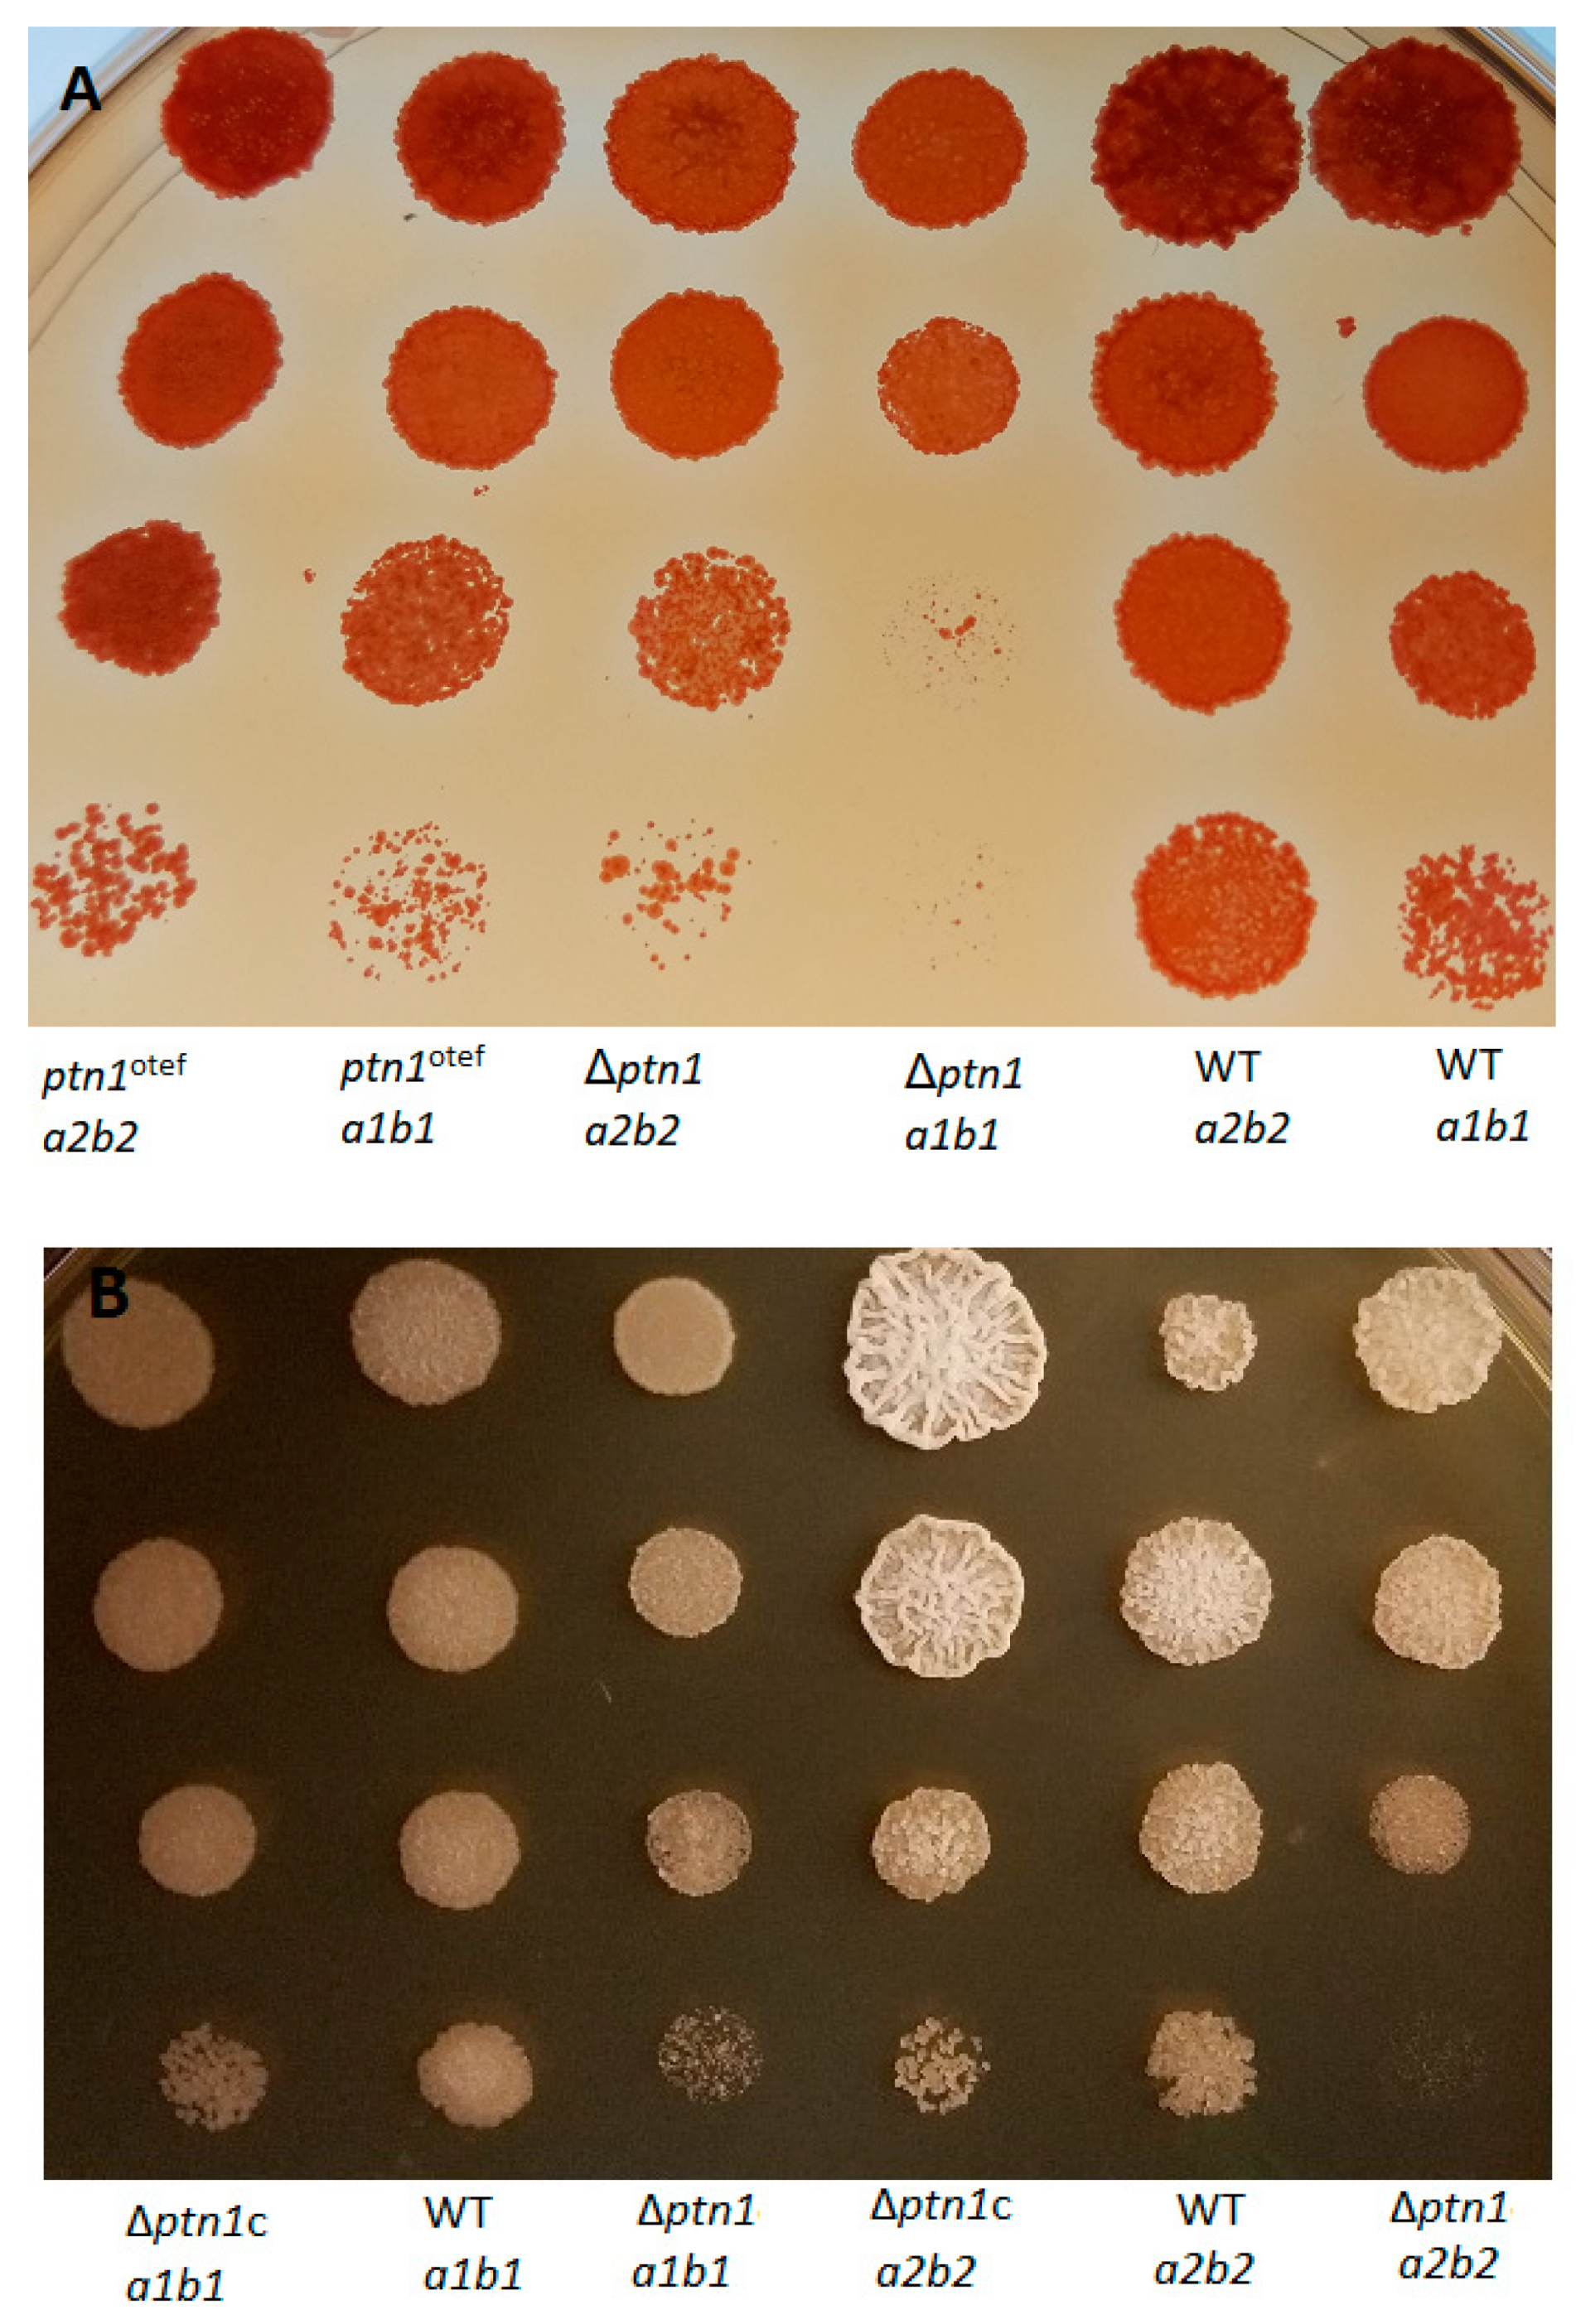 JoF | Free Full-Text | Deletion of ptn1, a PTEN/TEP1 Orthologue, in